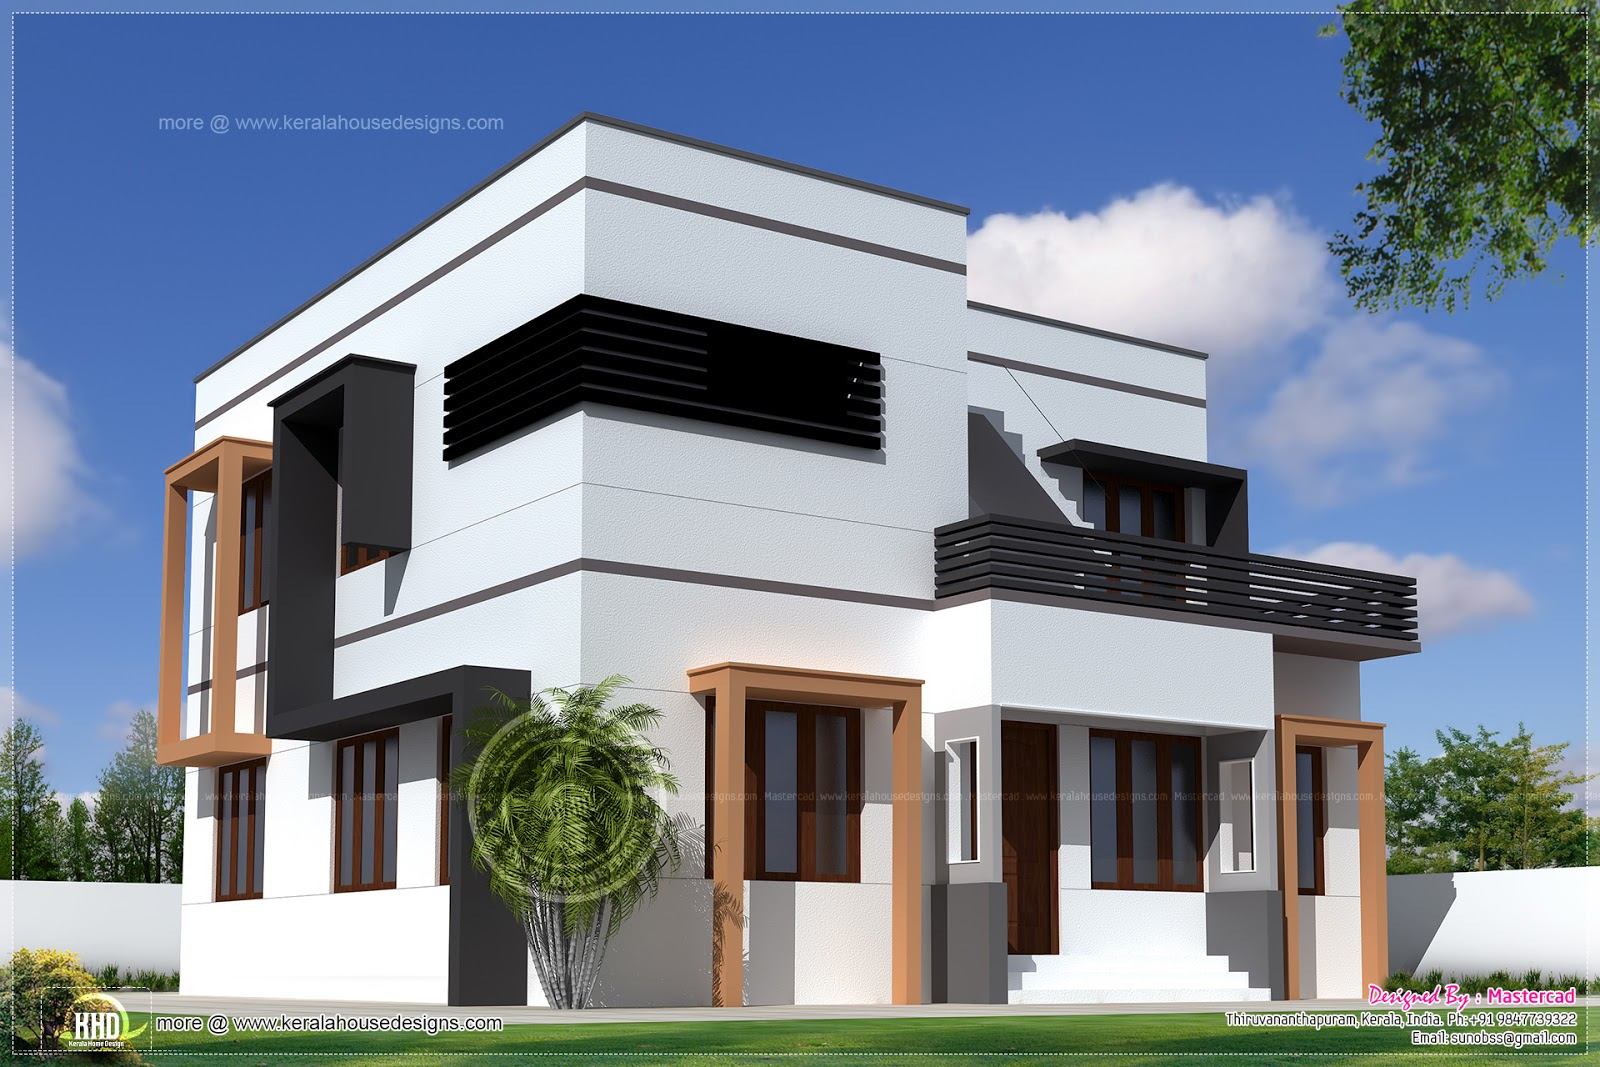 1627 square feet modern villa exterior house design plans Modern villa plan